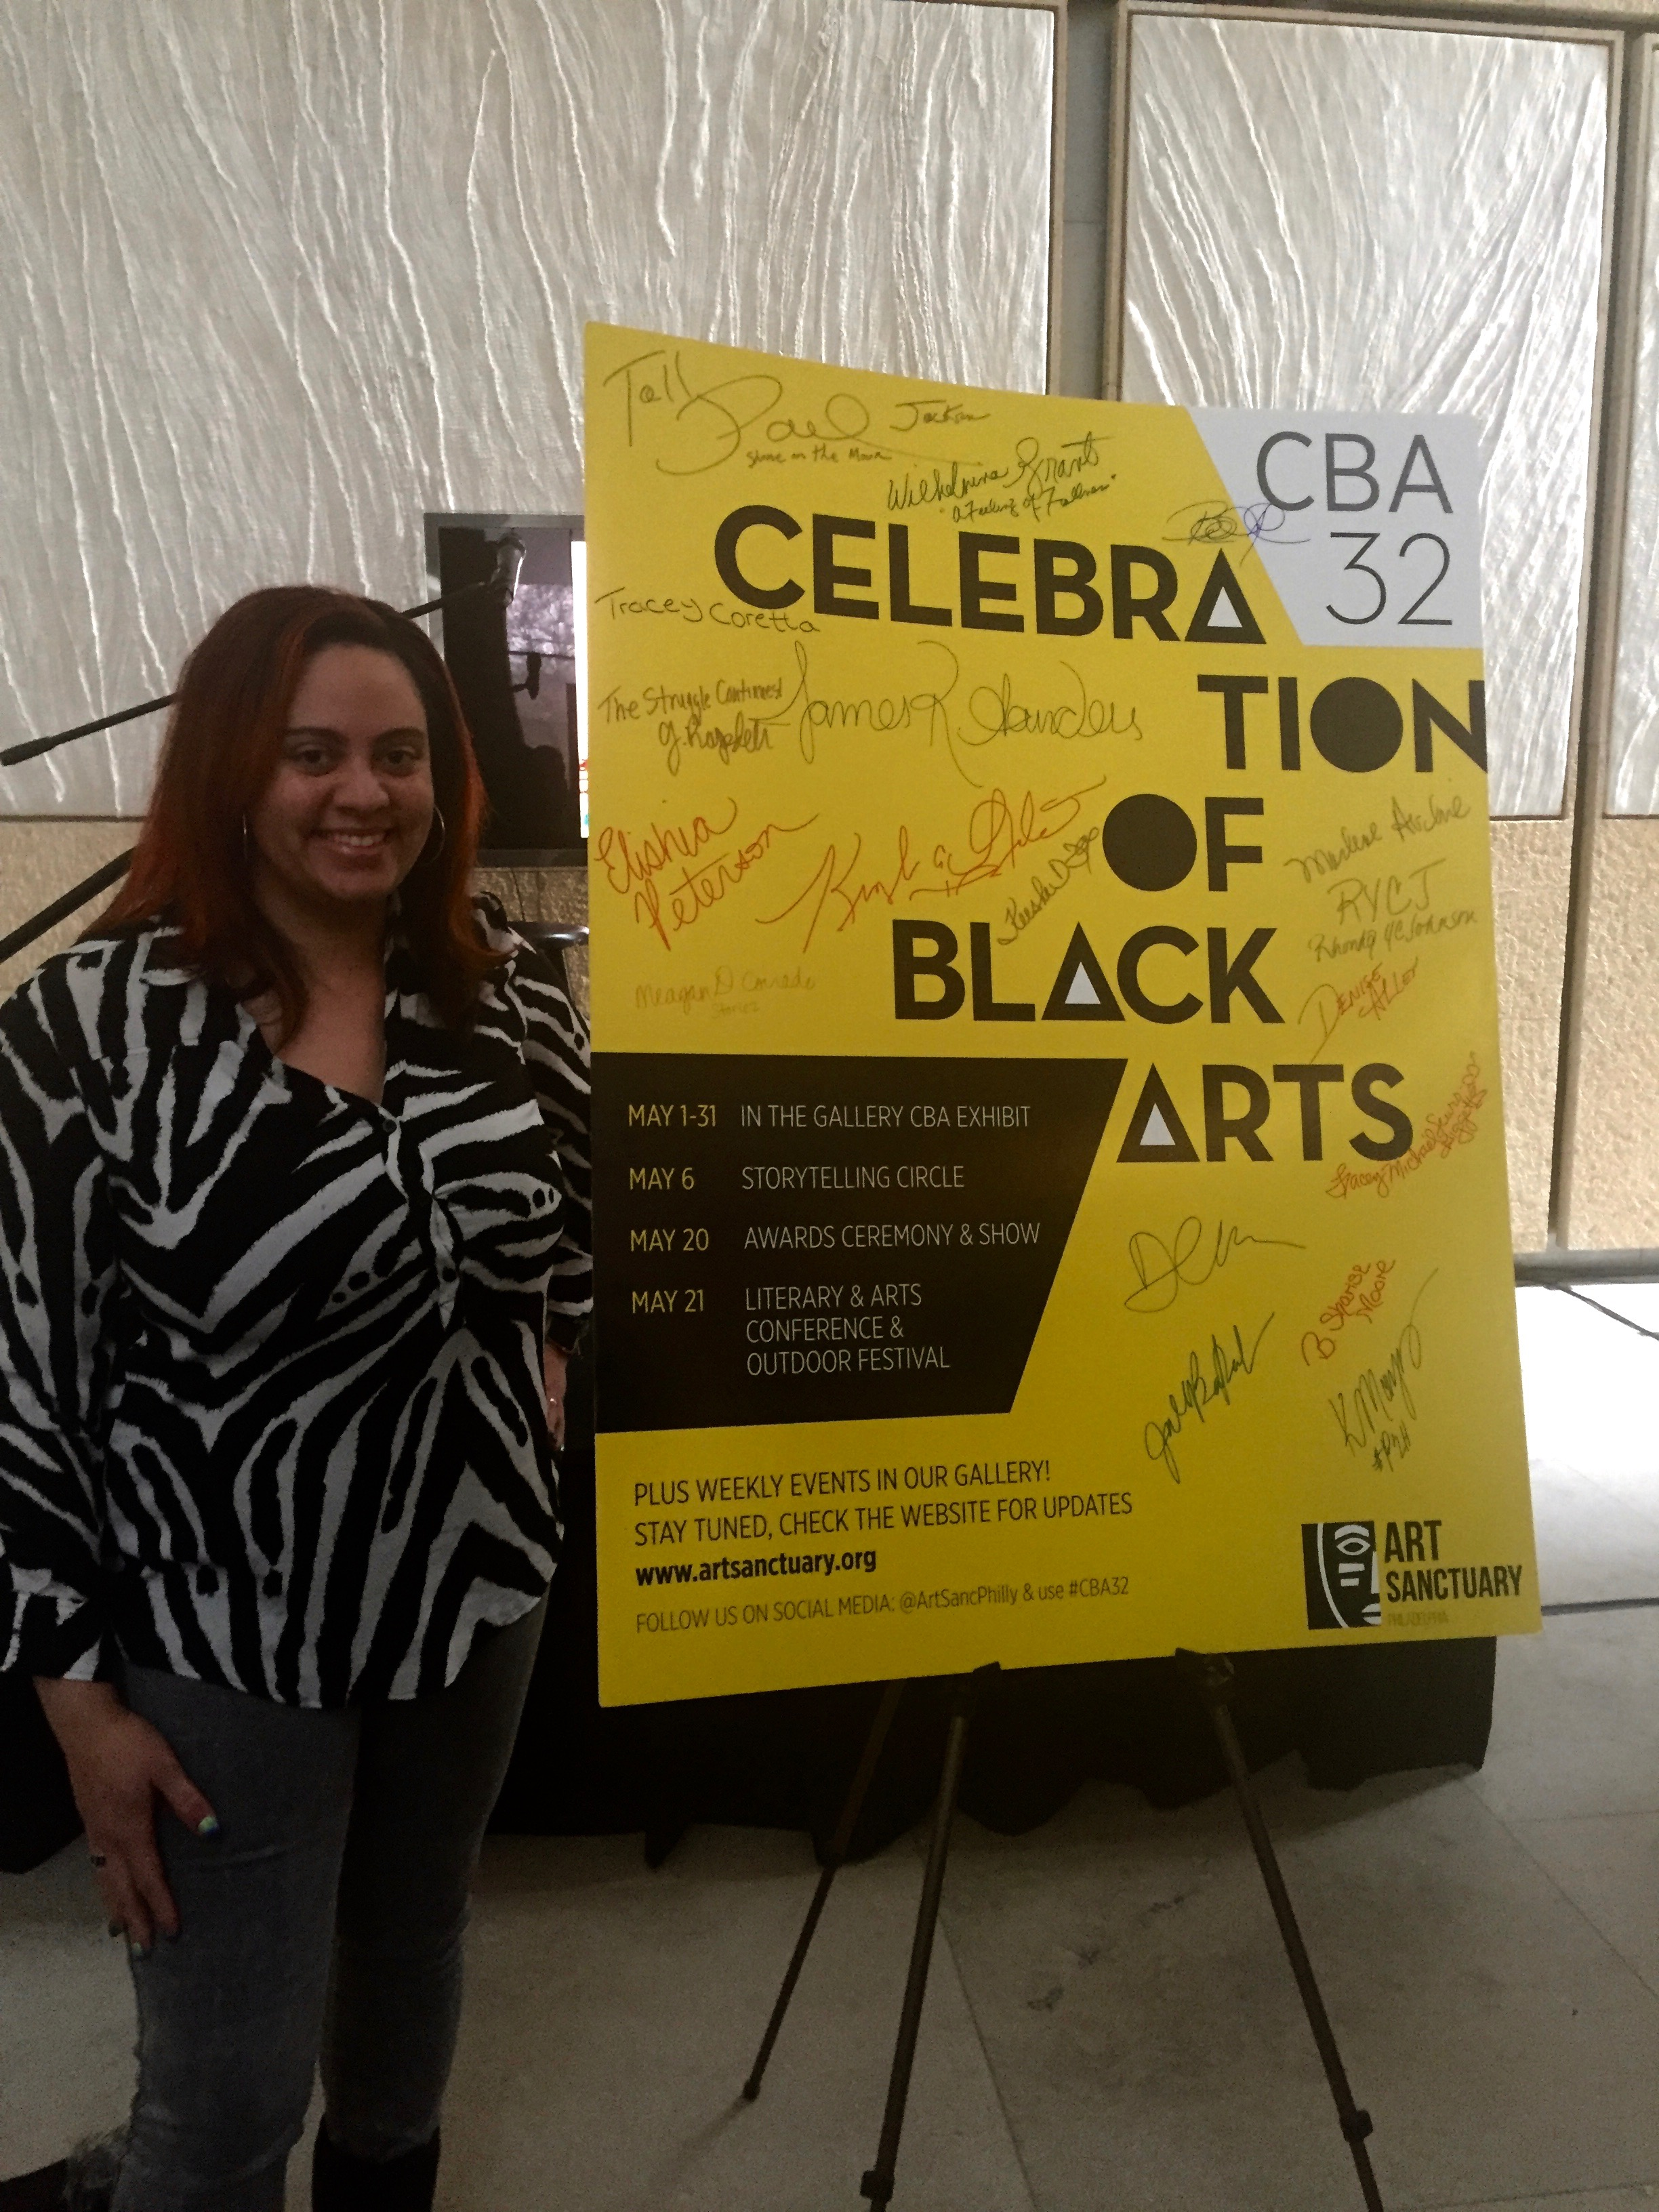 Storiez creator Meagan Corrado and other workshop presenters for Art Sanctuary's Literary and Arts Conference were honored at an event at the Barnes Foundation on 2/7/16A